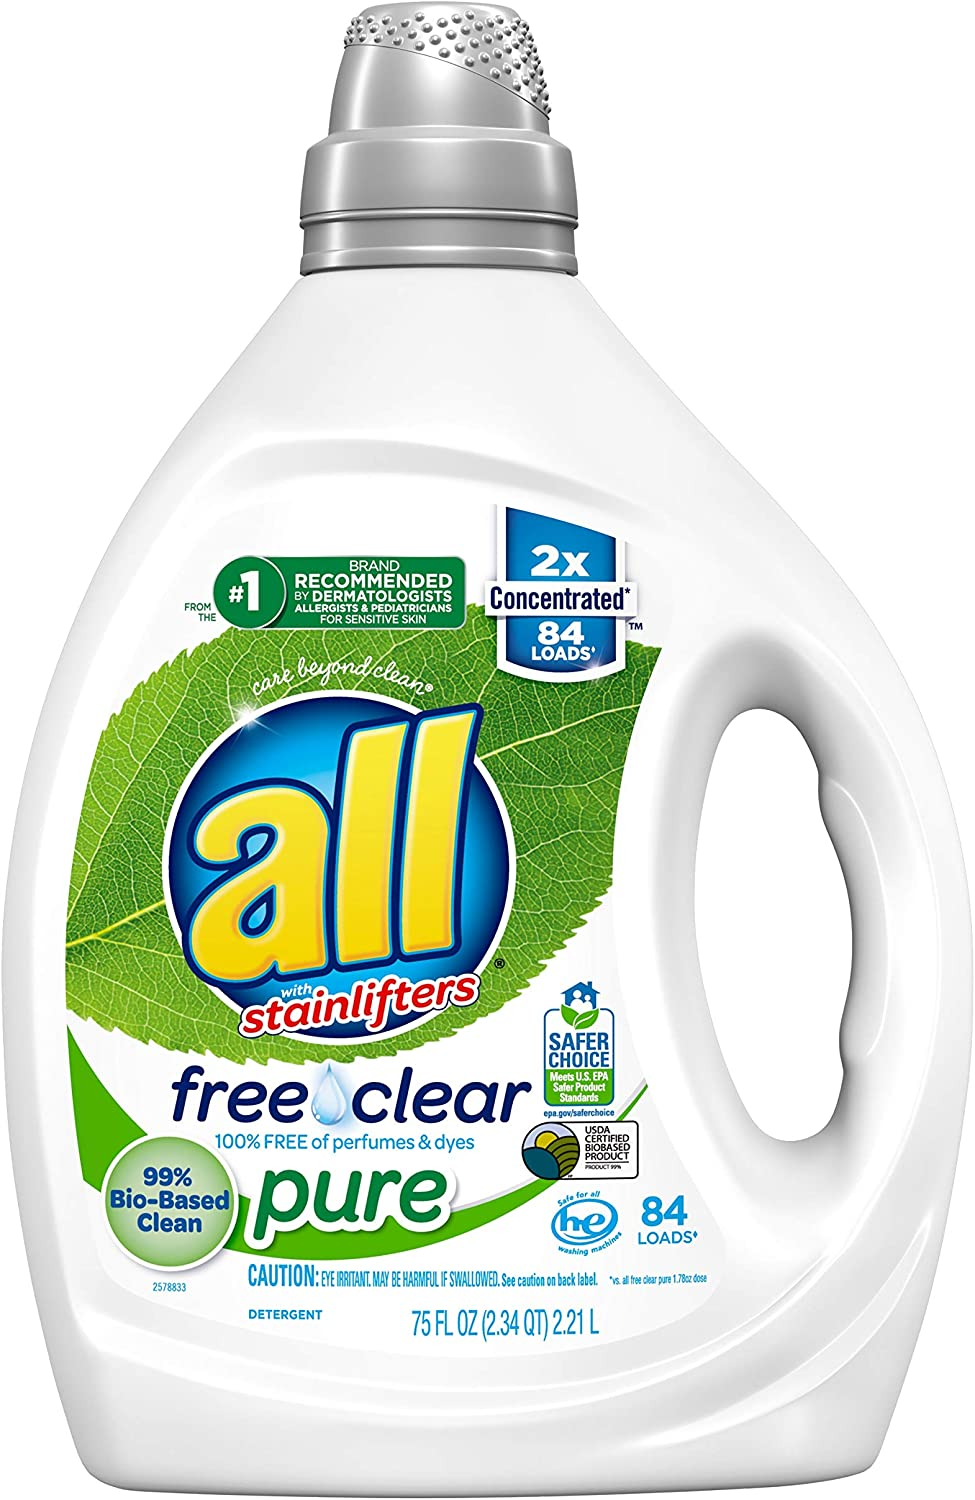 all Liquid Laundry Detergent, Free Clear Pure, 99% Biobased, 2X Concentrated, 84 Loads, 75